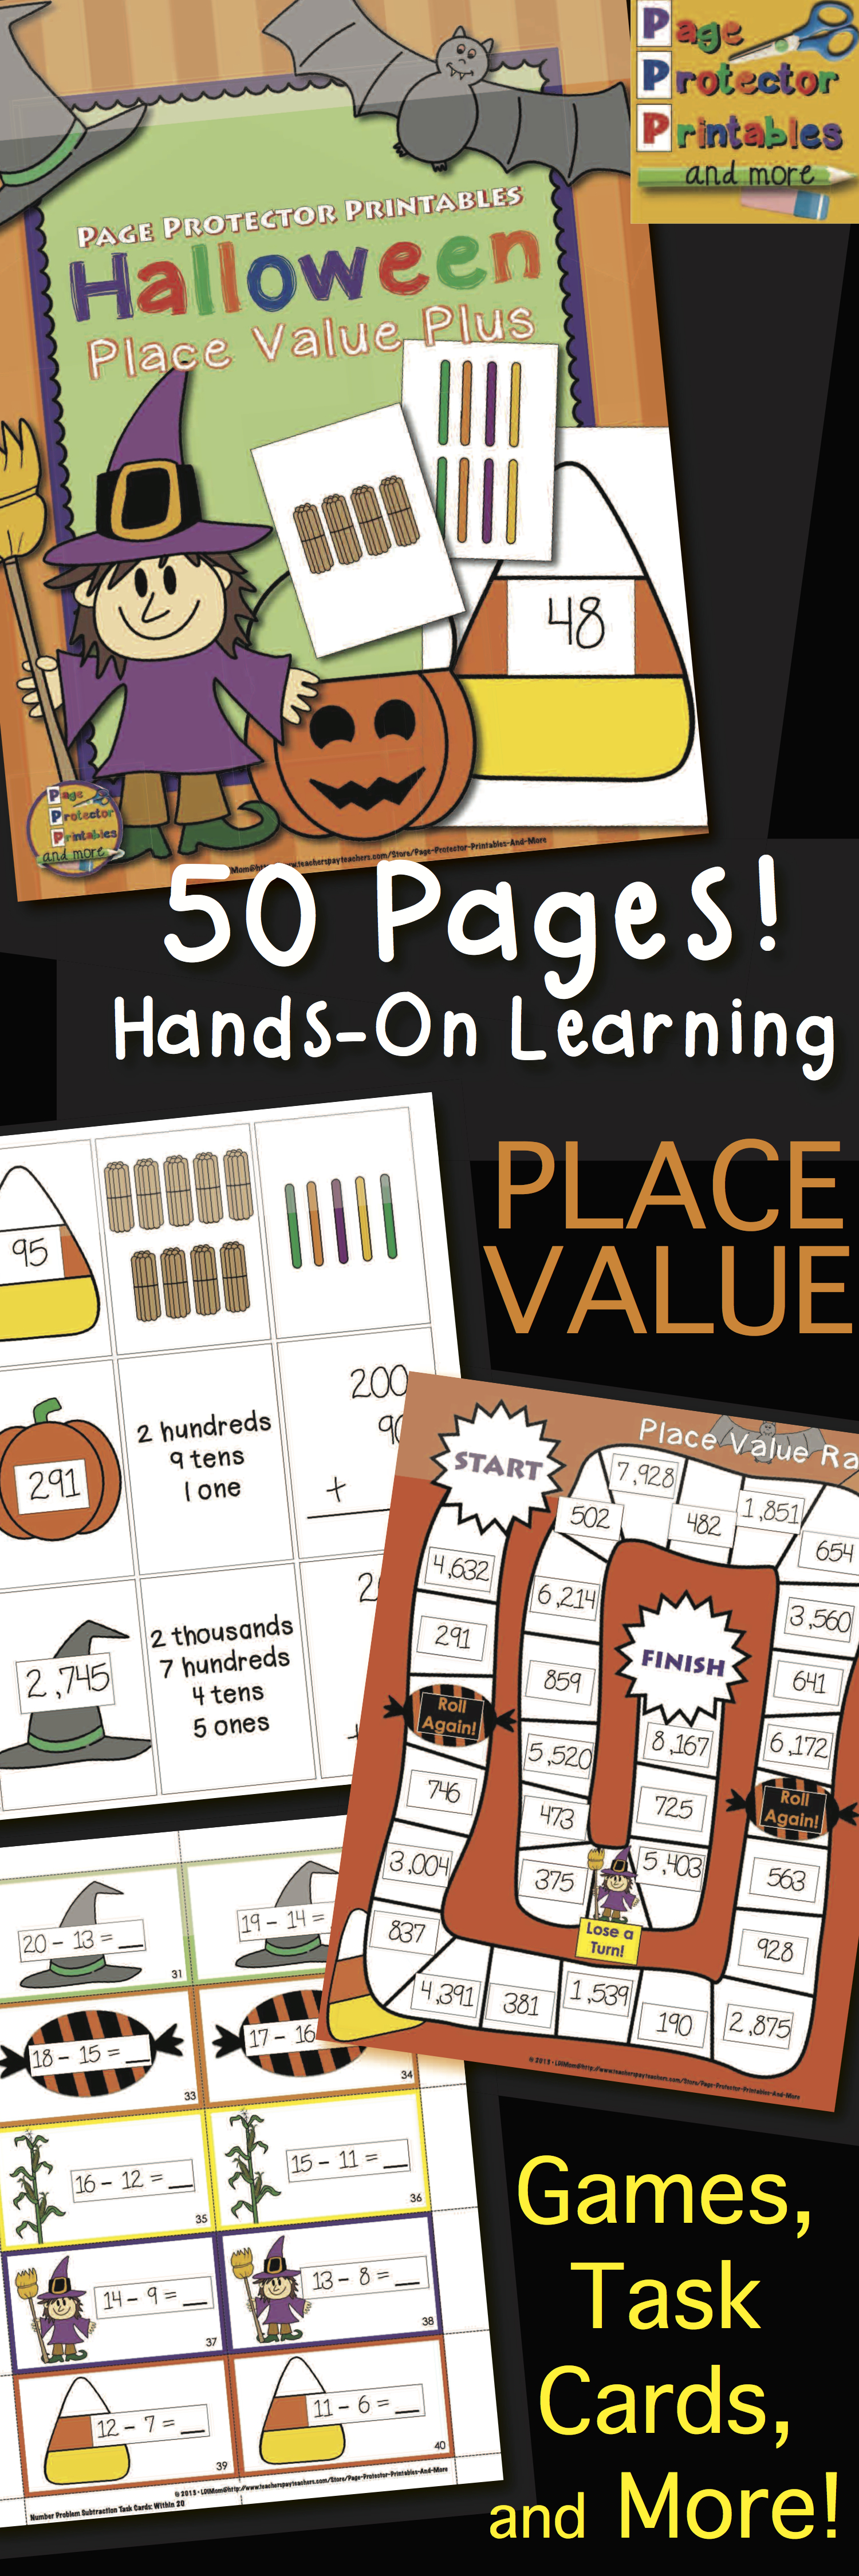 Halloween Place Value With Images